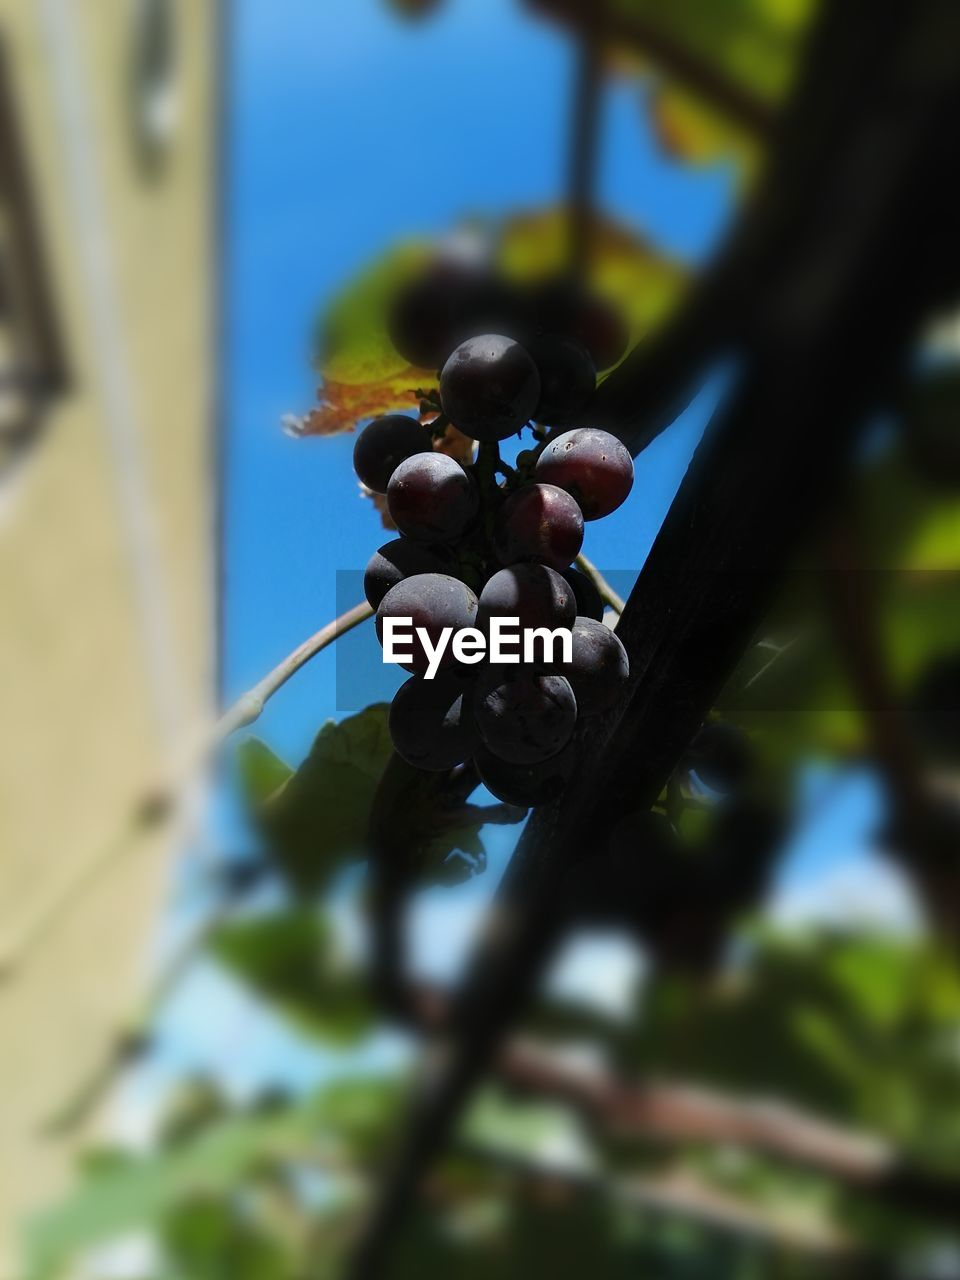 growth, fruit, nature, grape, day, outdoors, plant, close-up, no people, focus on foreground, leaf, tree, beauty in nature, freshness